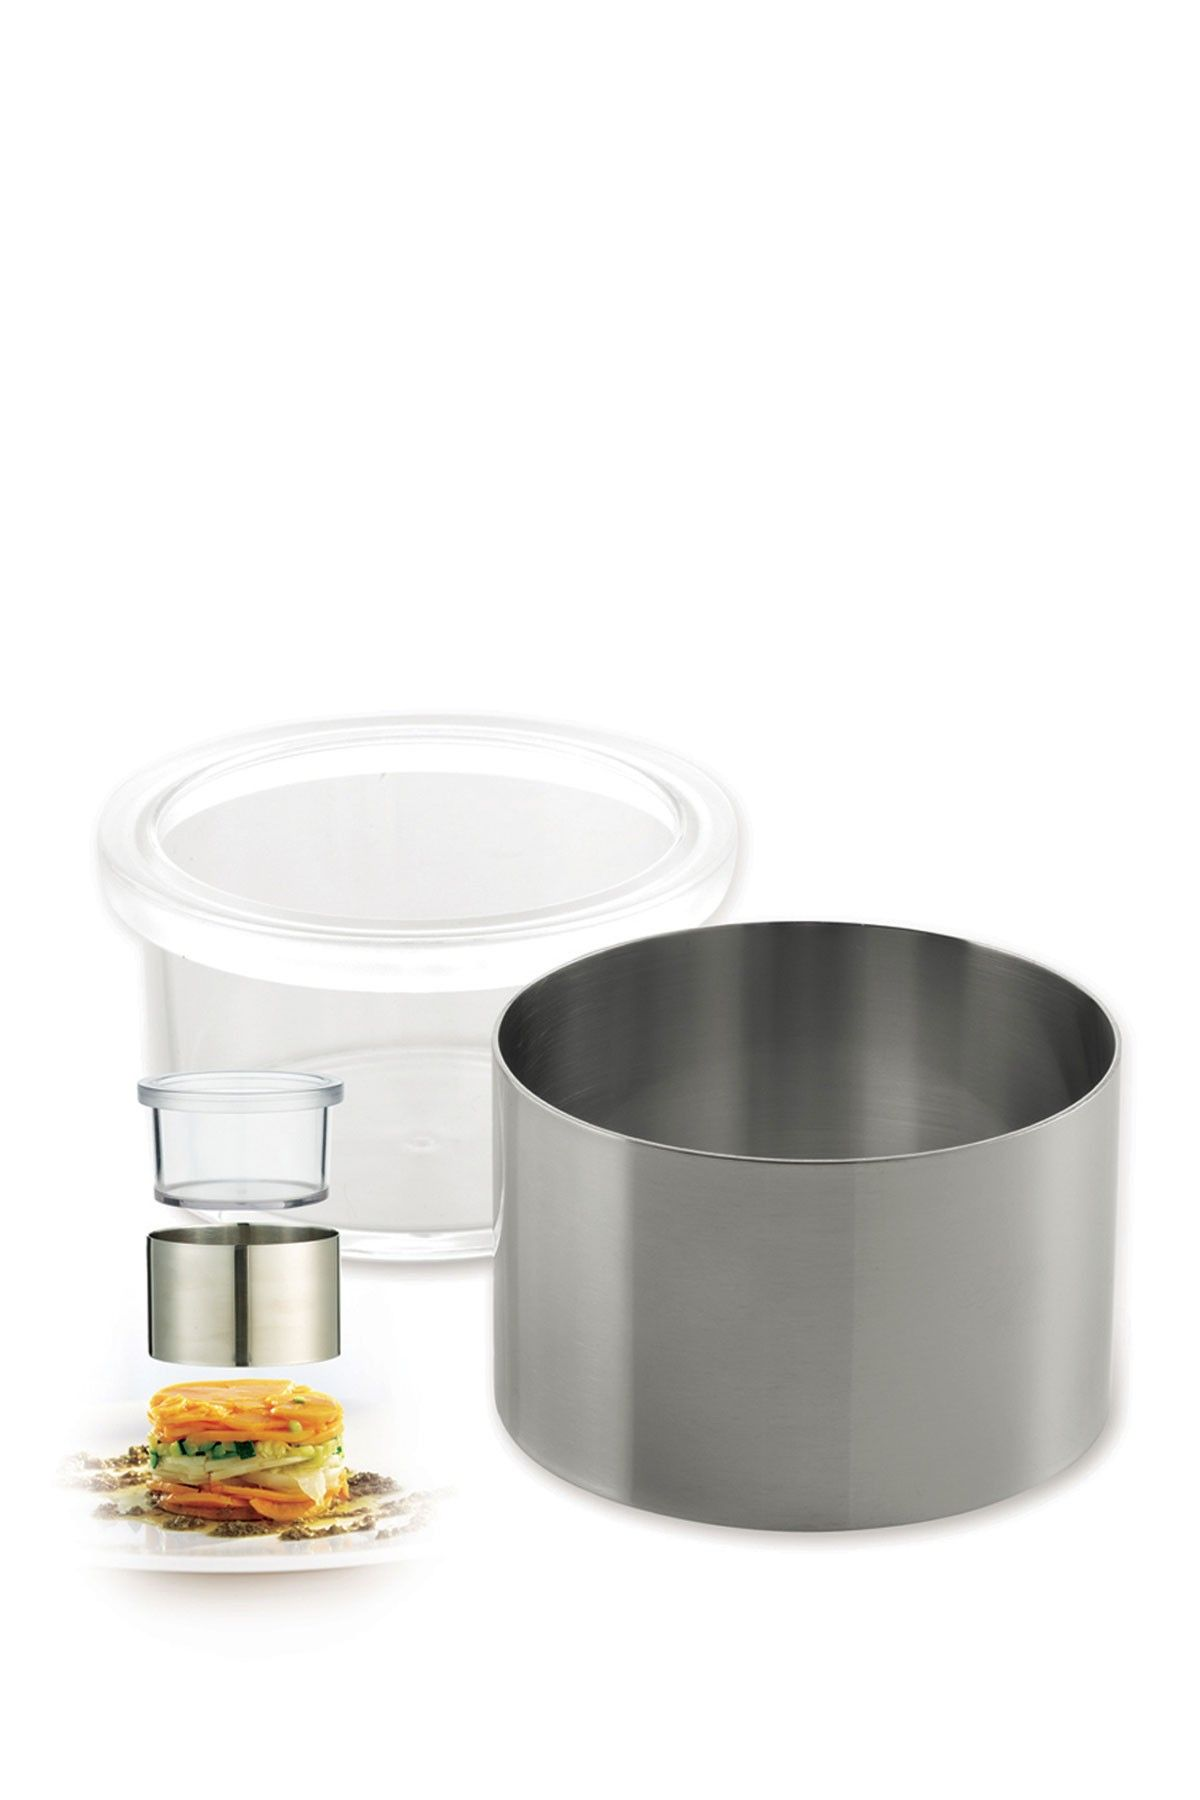 T.K. Stainless Steel Food Ring & Pusher